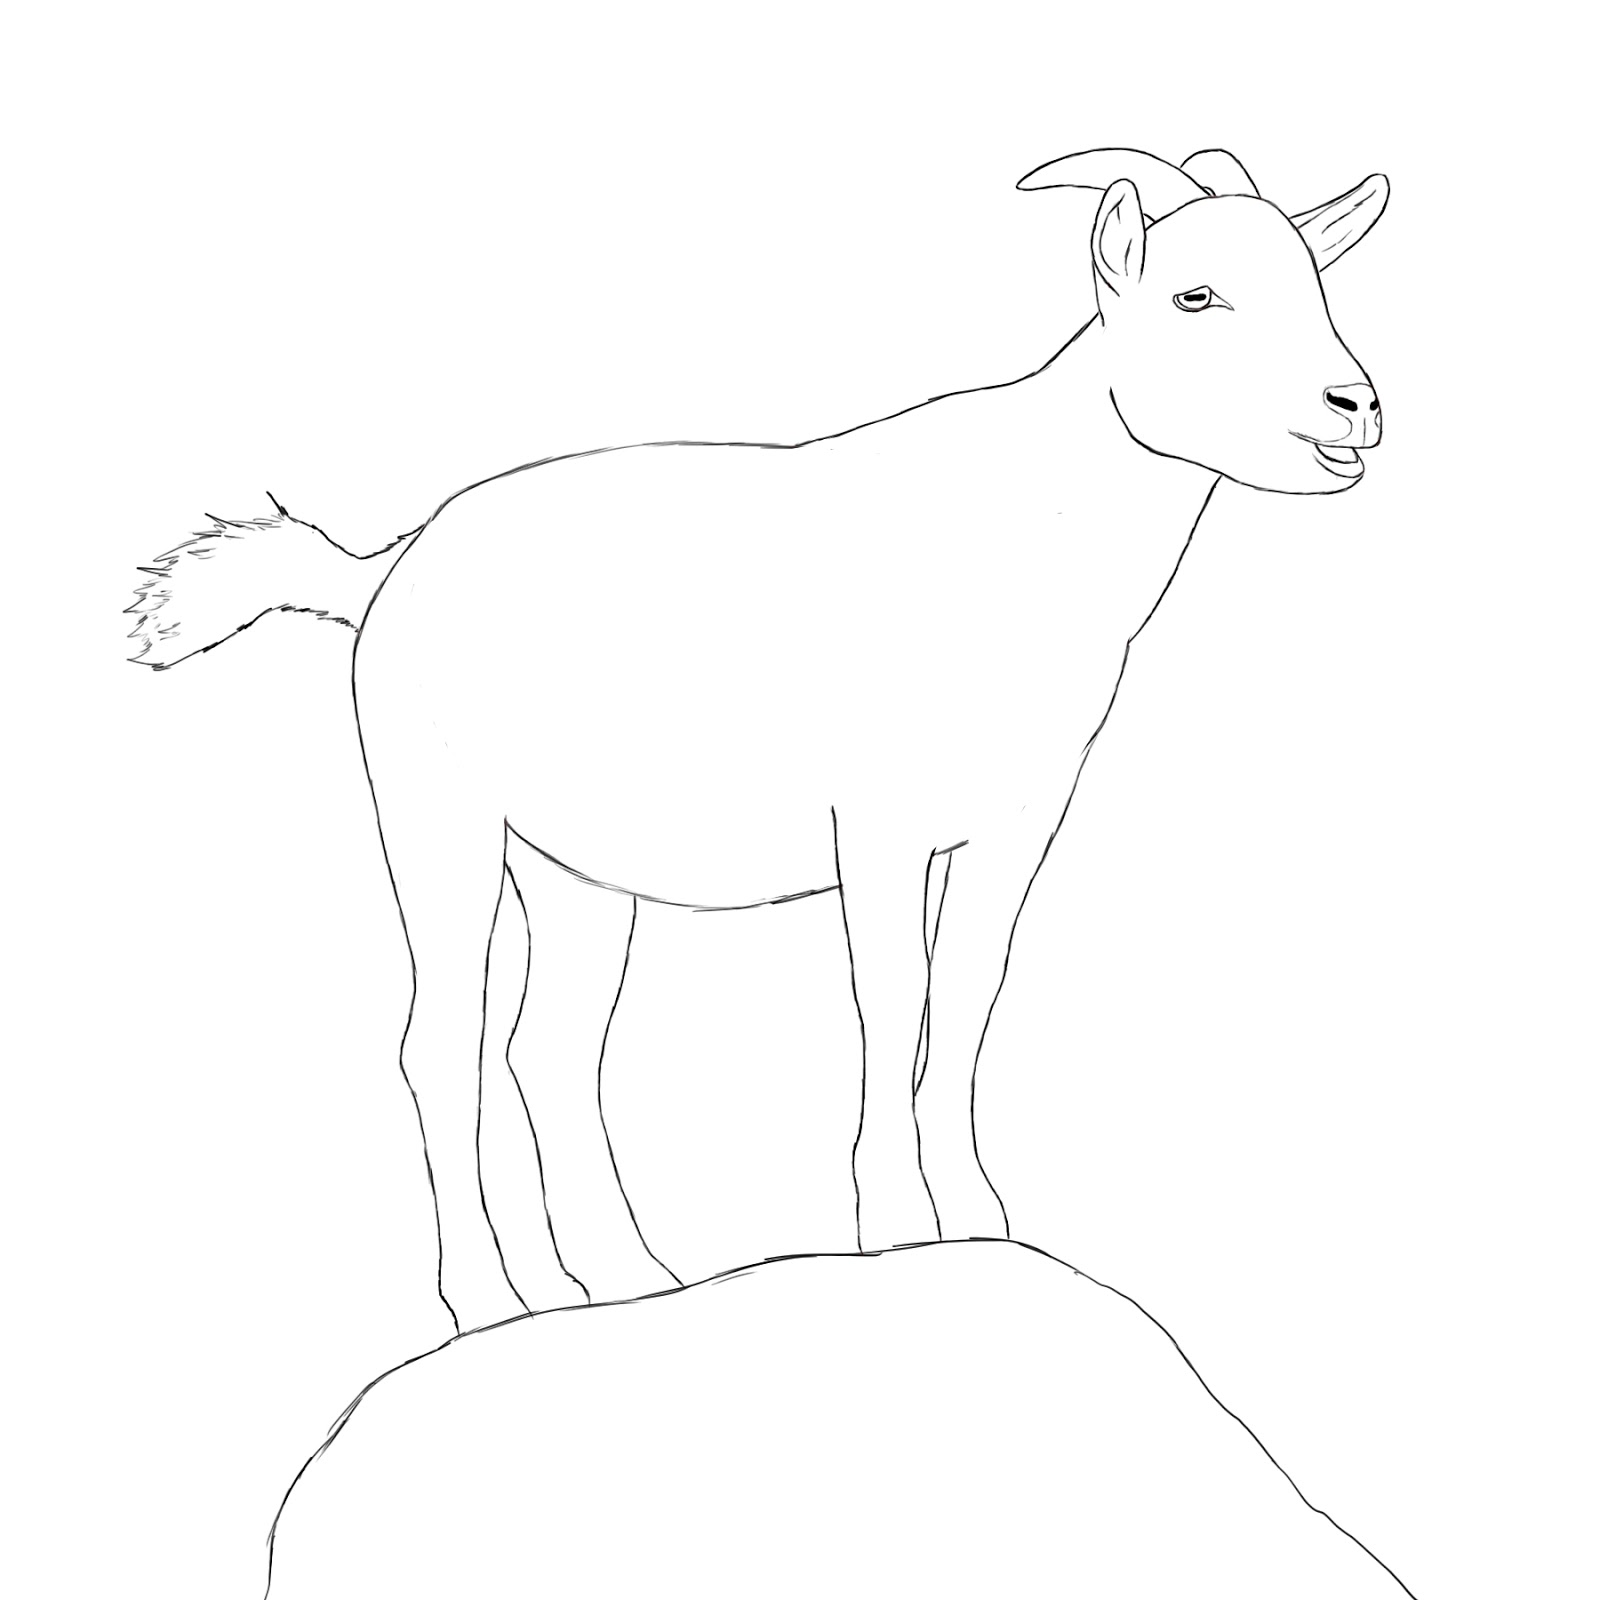 goat sketch how to draw a goat draw central sketch goat